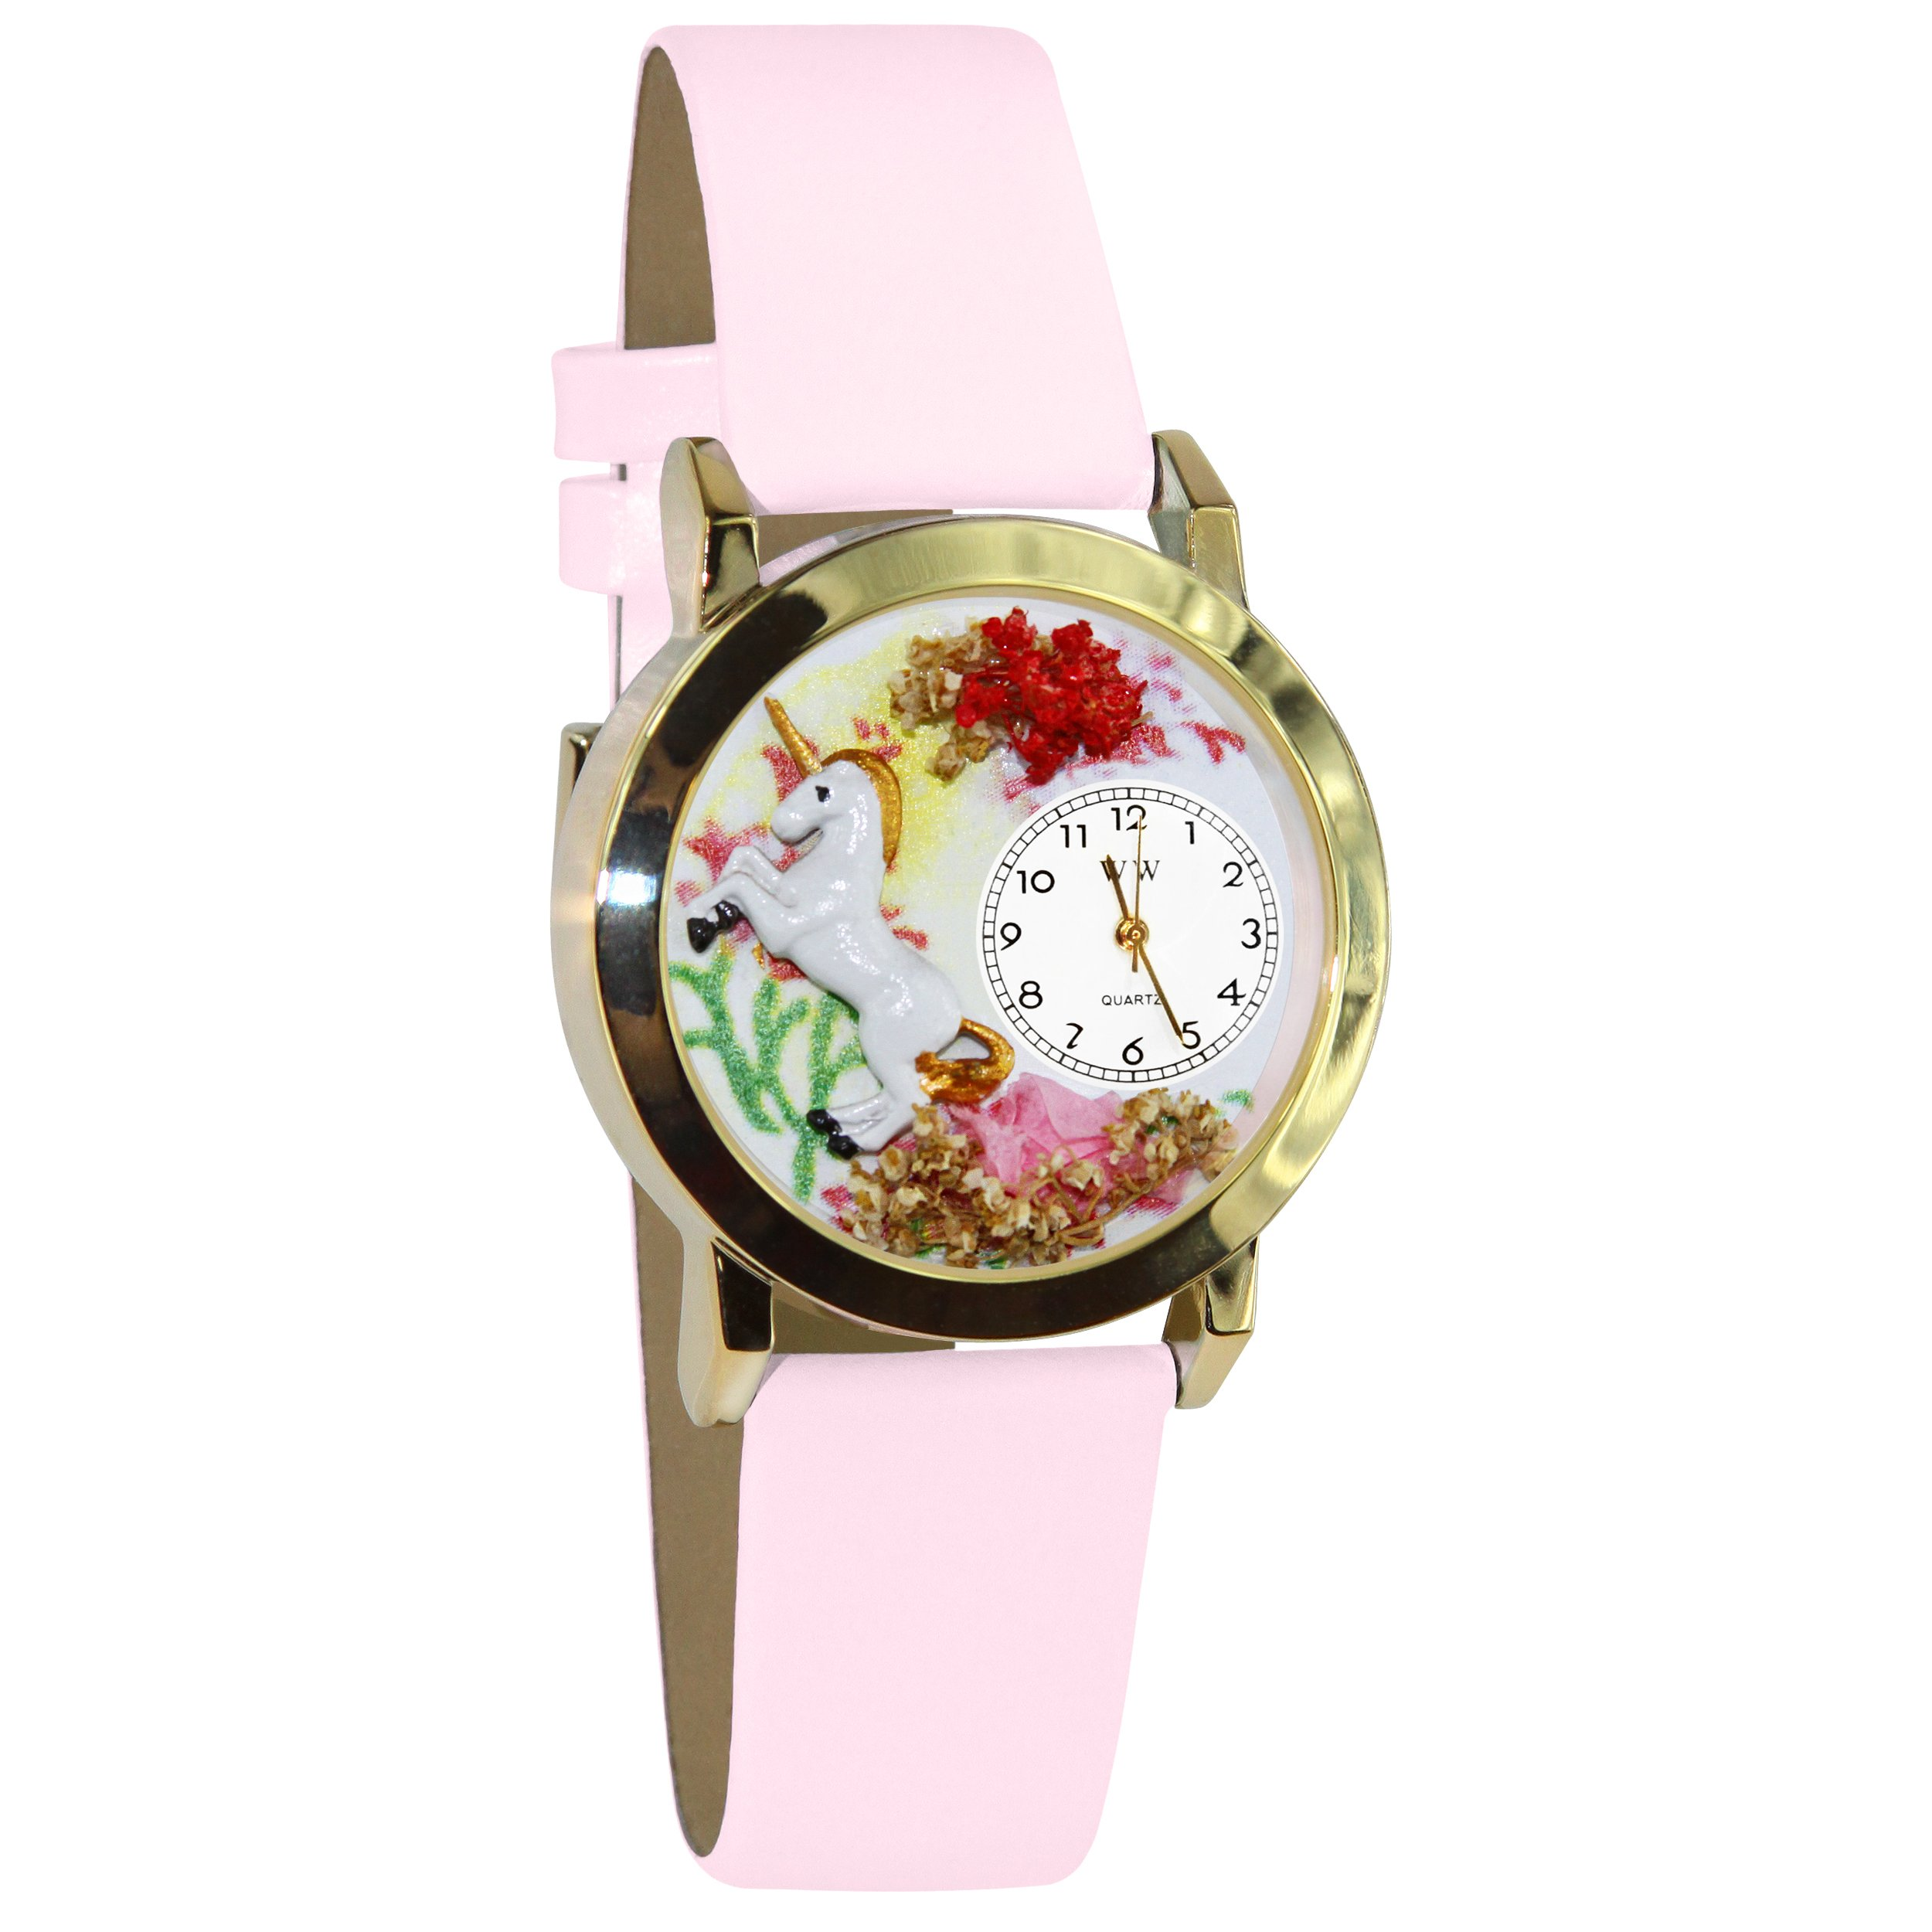 Whimsical Watches Kids' C0420001 Classic Gold Unicorn Pink Leather And Goldtone Watch by WHIMSICAL